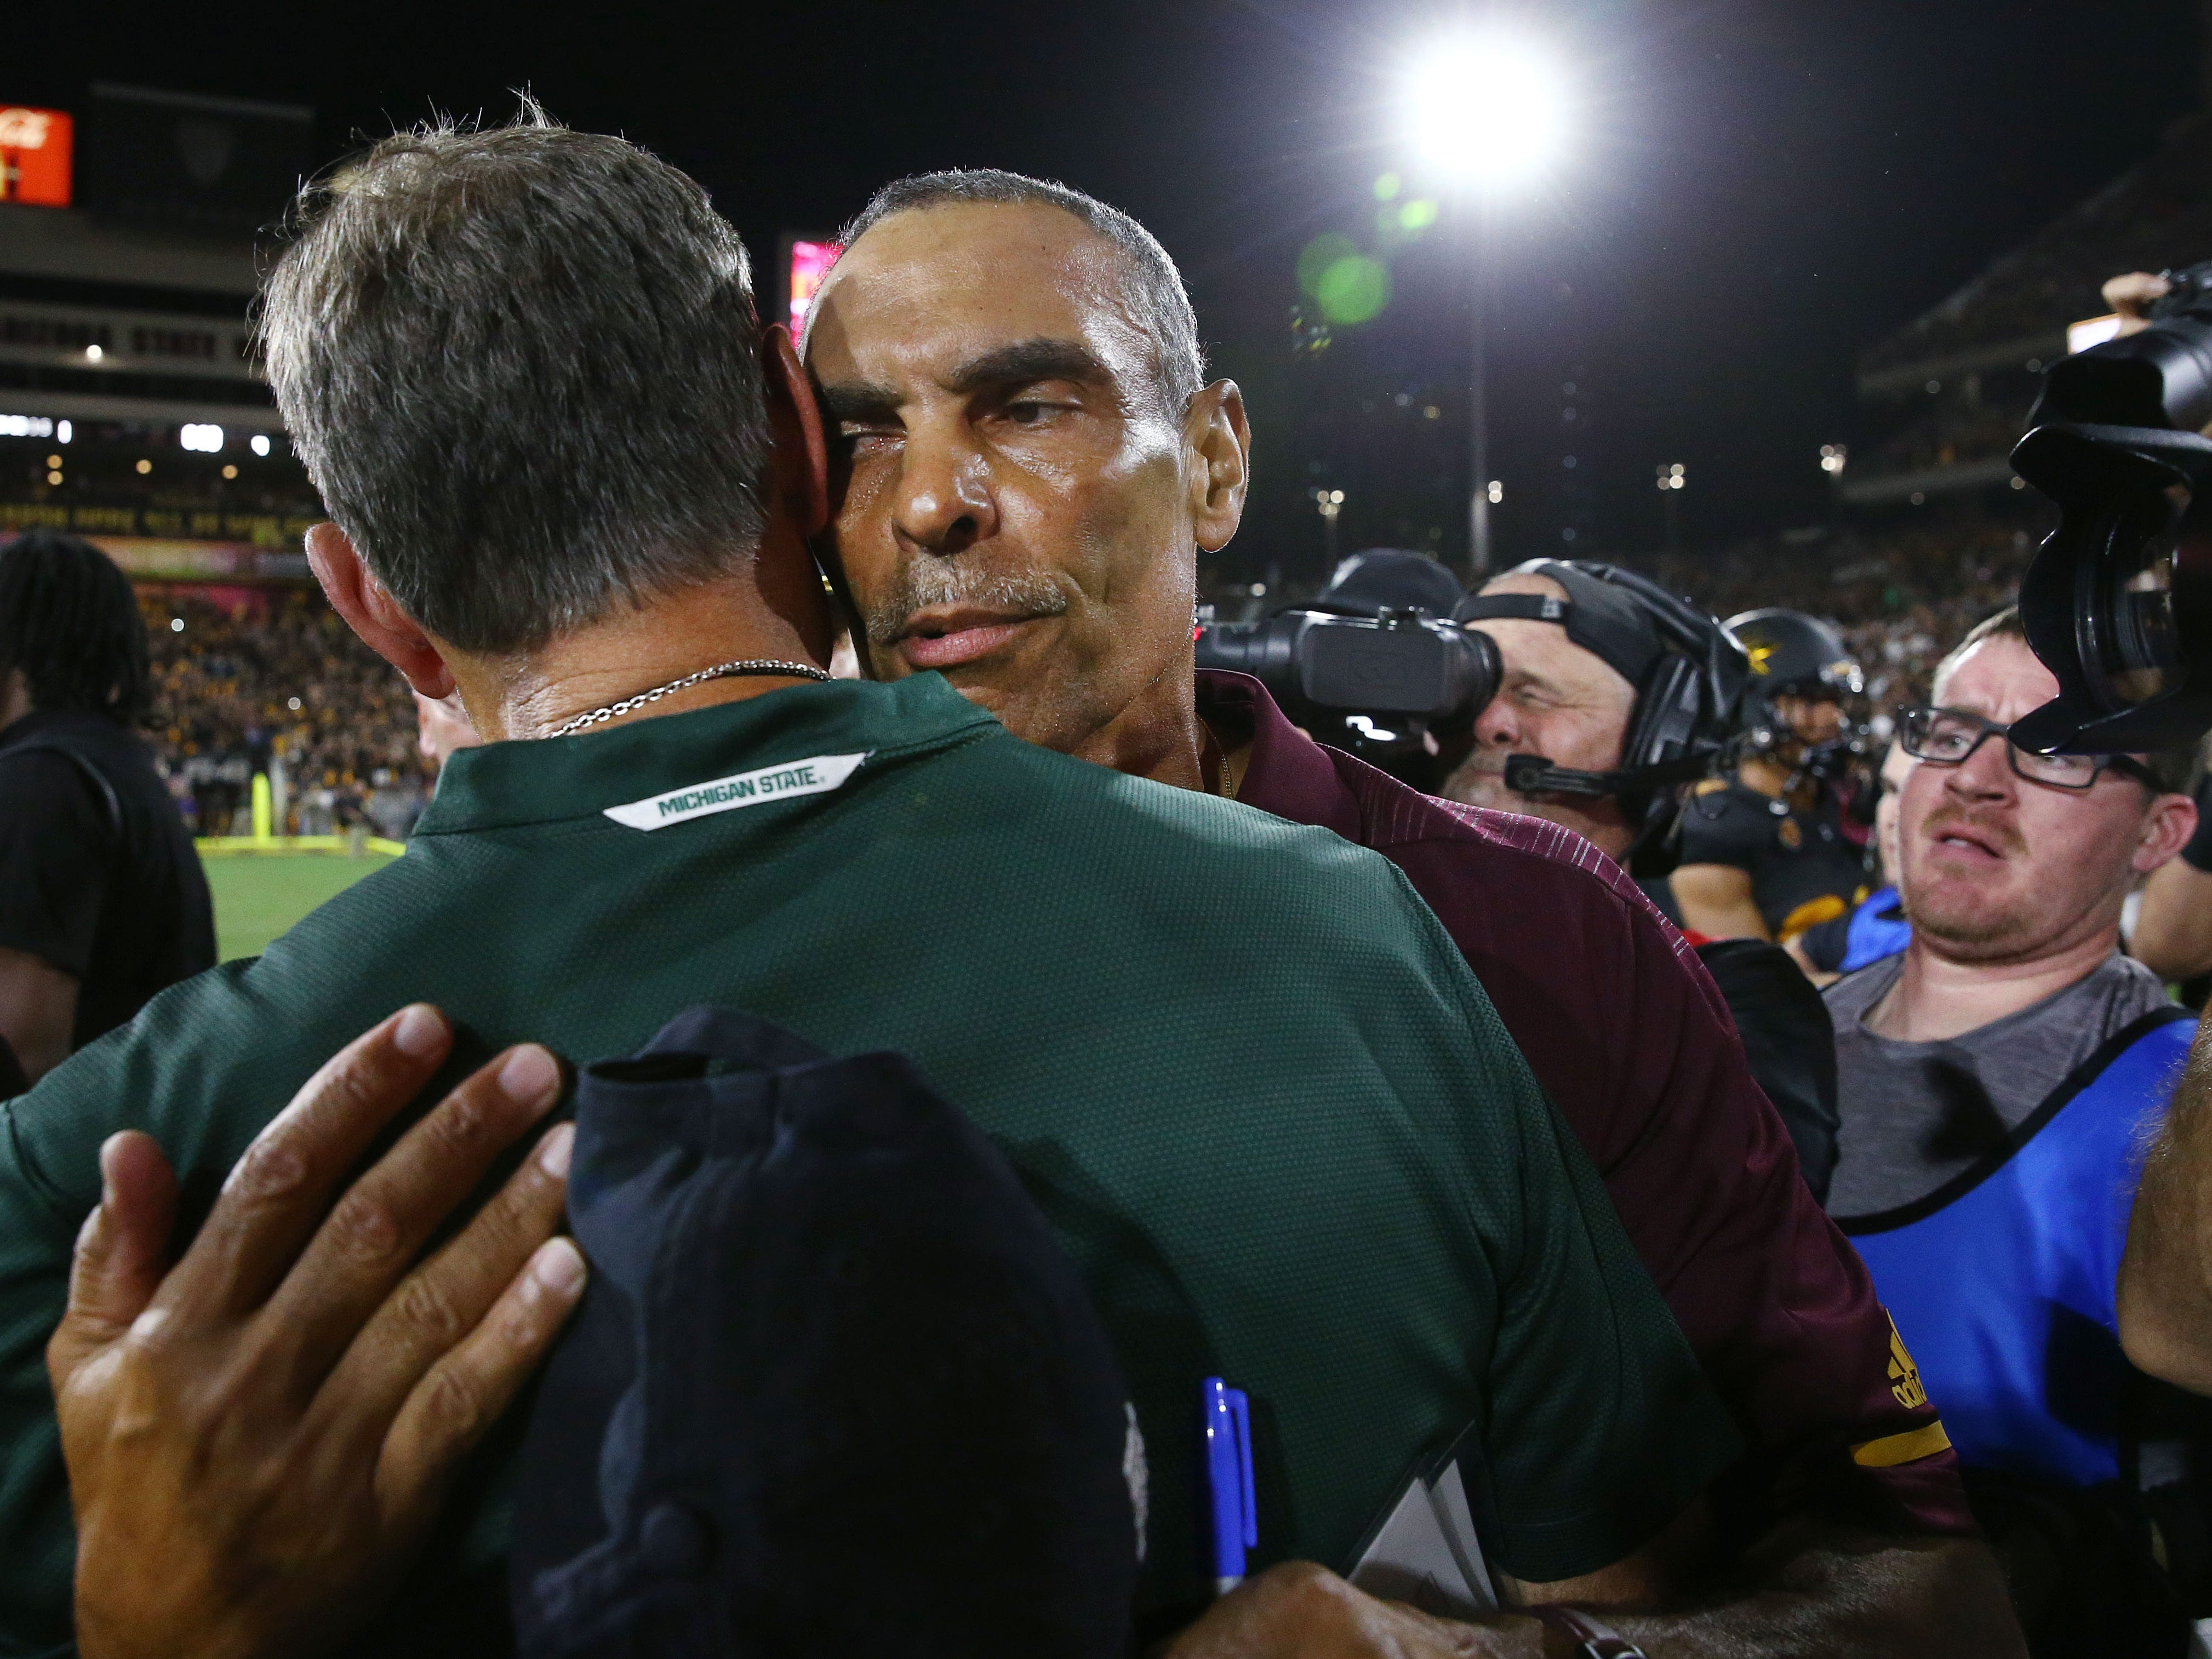 Arizona State head coach Herm Edwards hugs Michigan State head coach Mark Dantonio after the Sun Devils defeated Spartans 16-13 on Sep. 8, 2018, at Sun Devil Stadium.